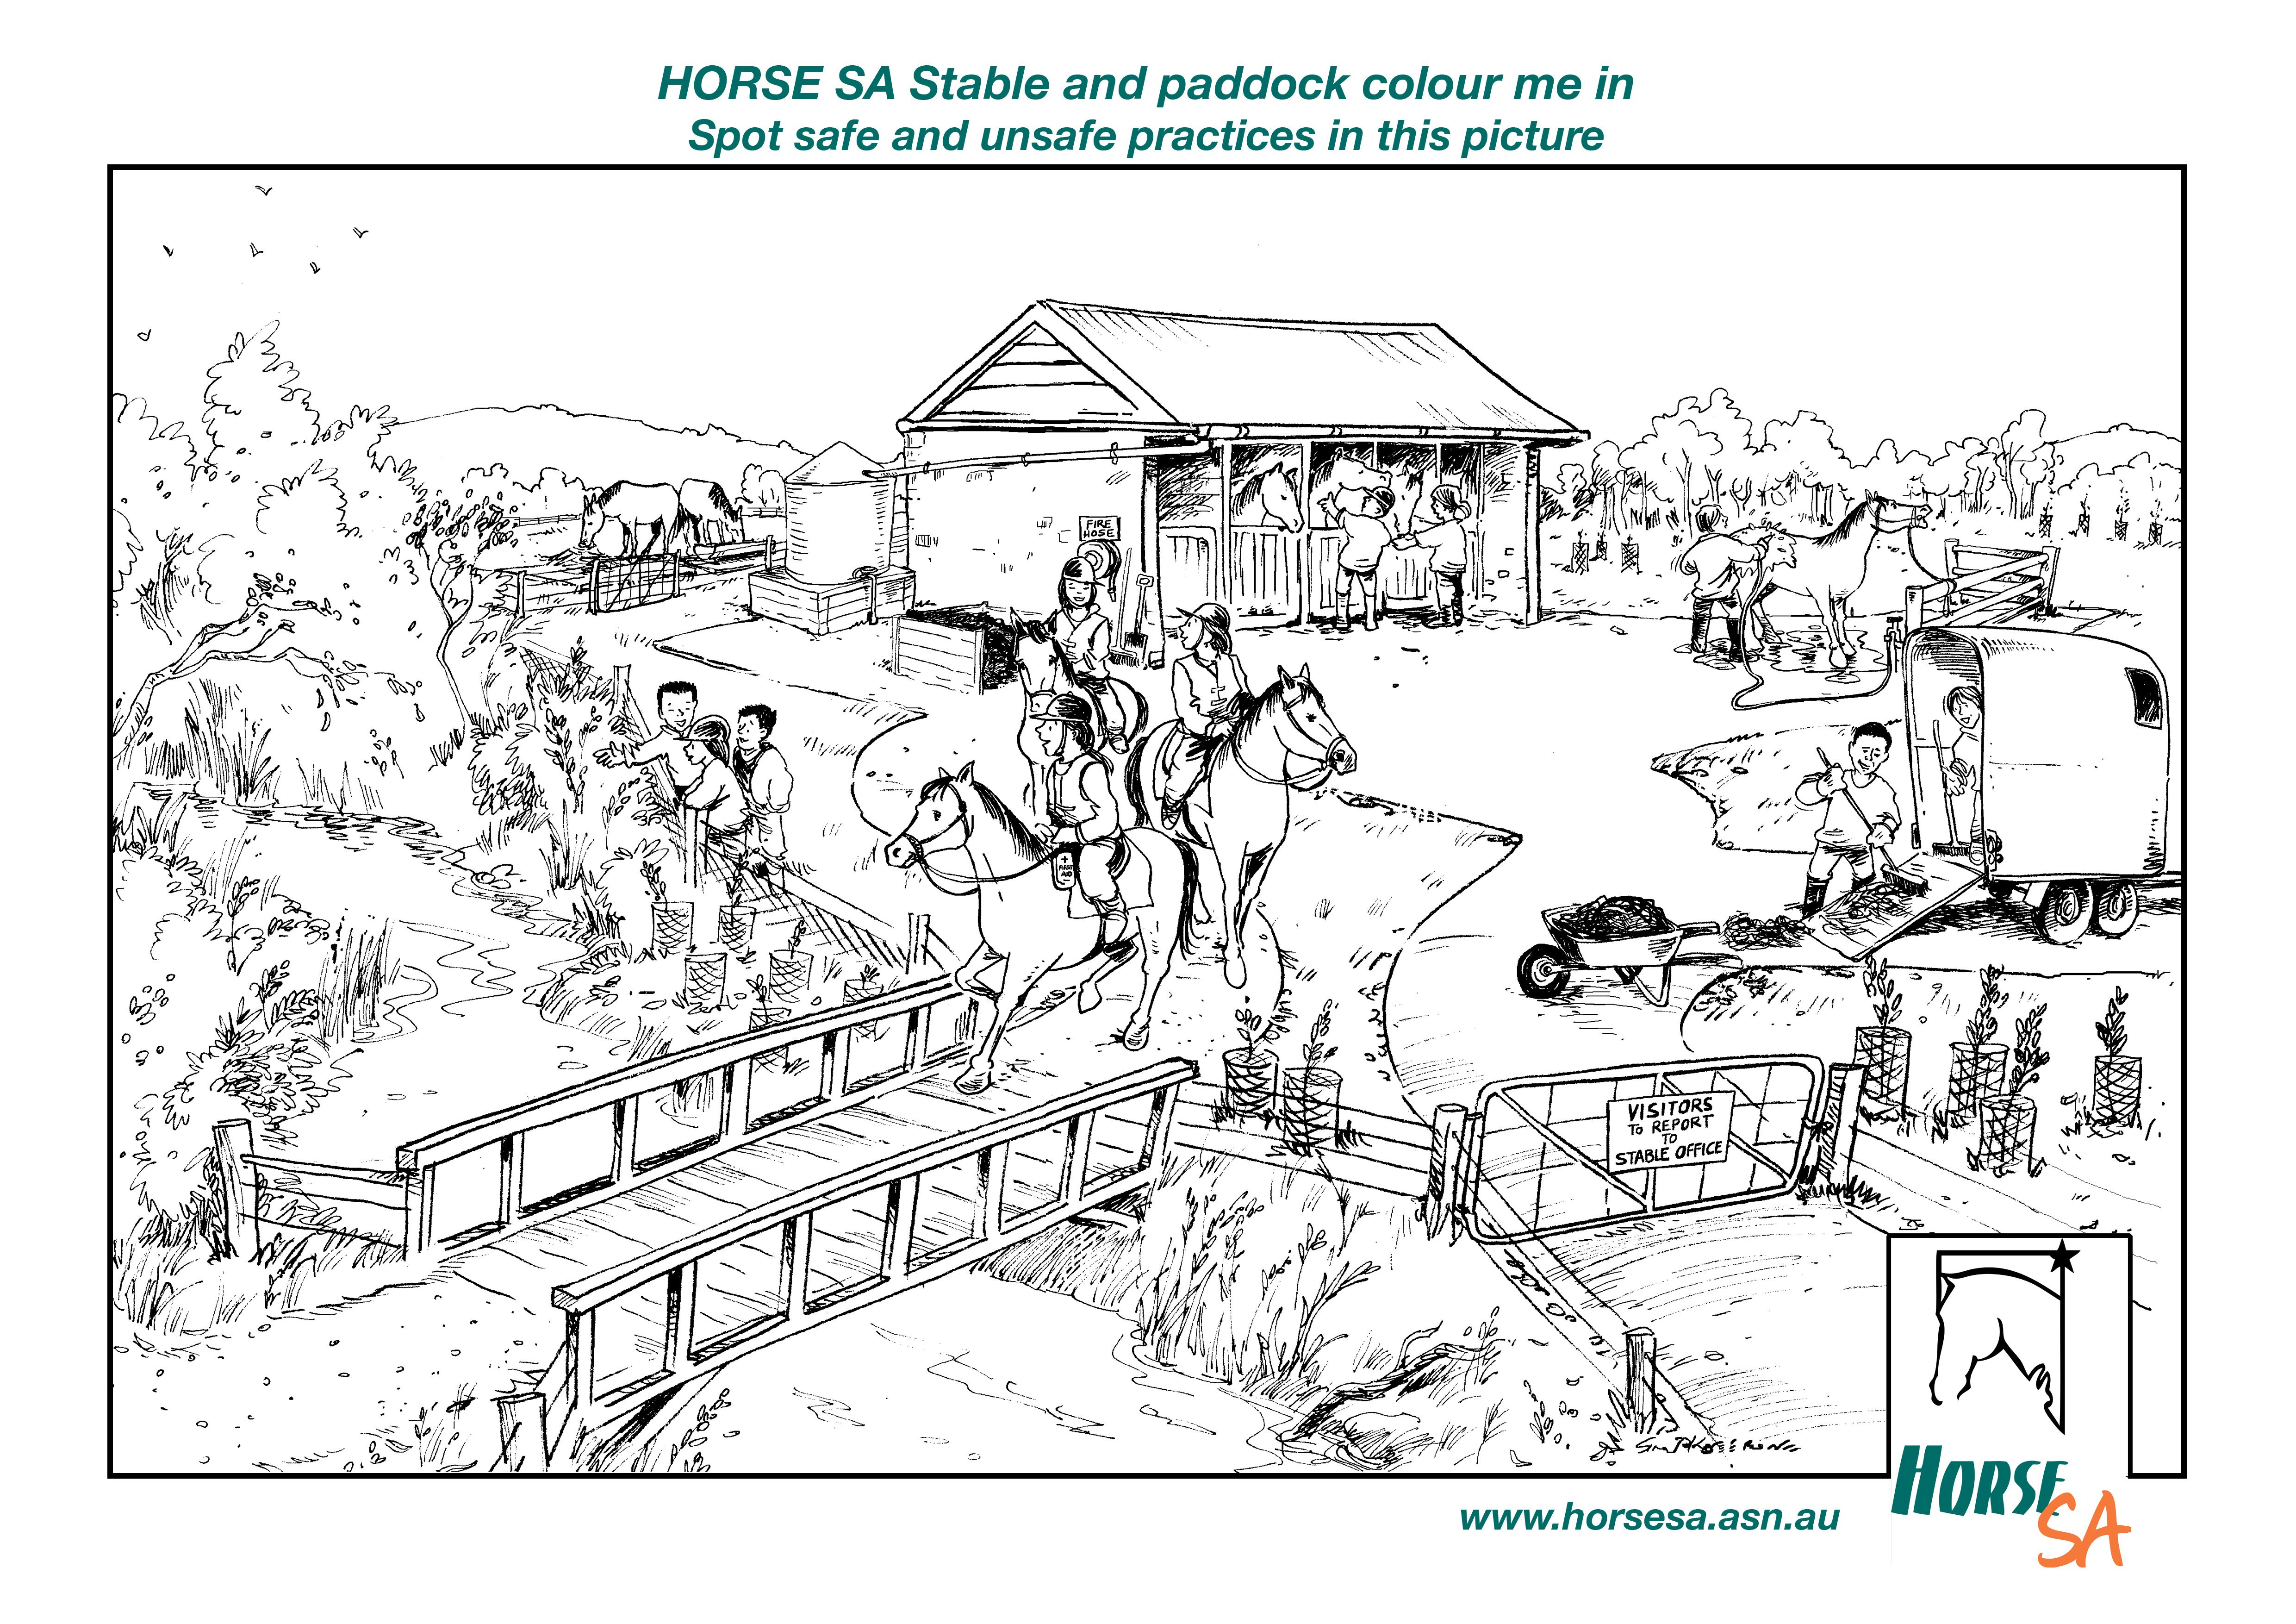 Download this colour in http://www.horsesa.asn.au/wp-content/uploads/2013/08/Colour-in-picture.jpg